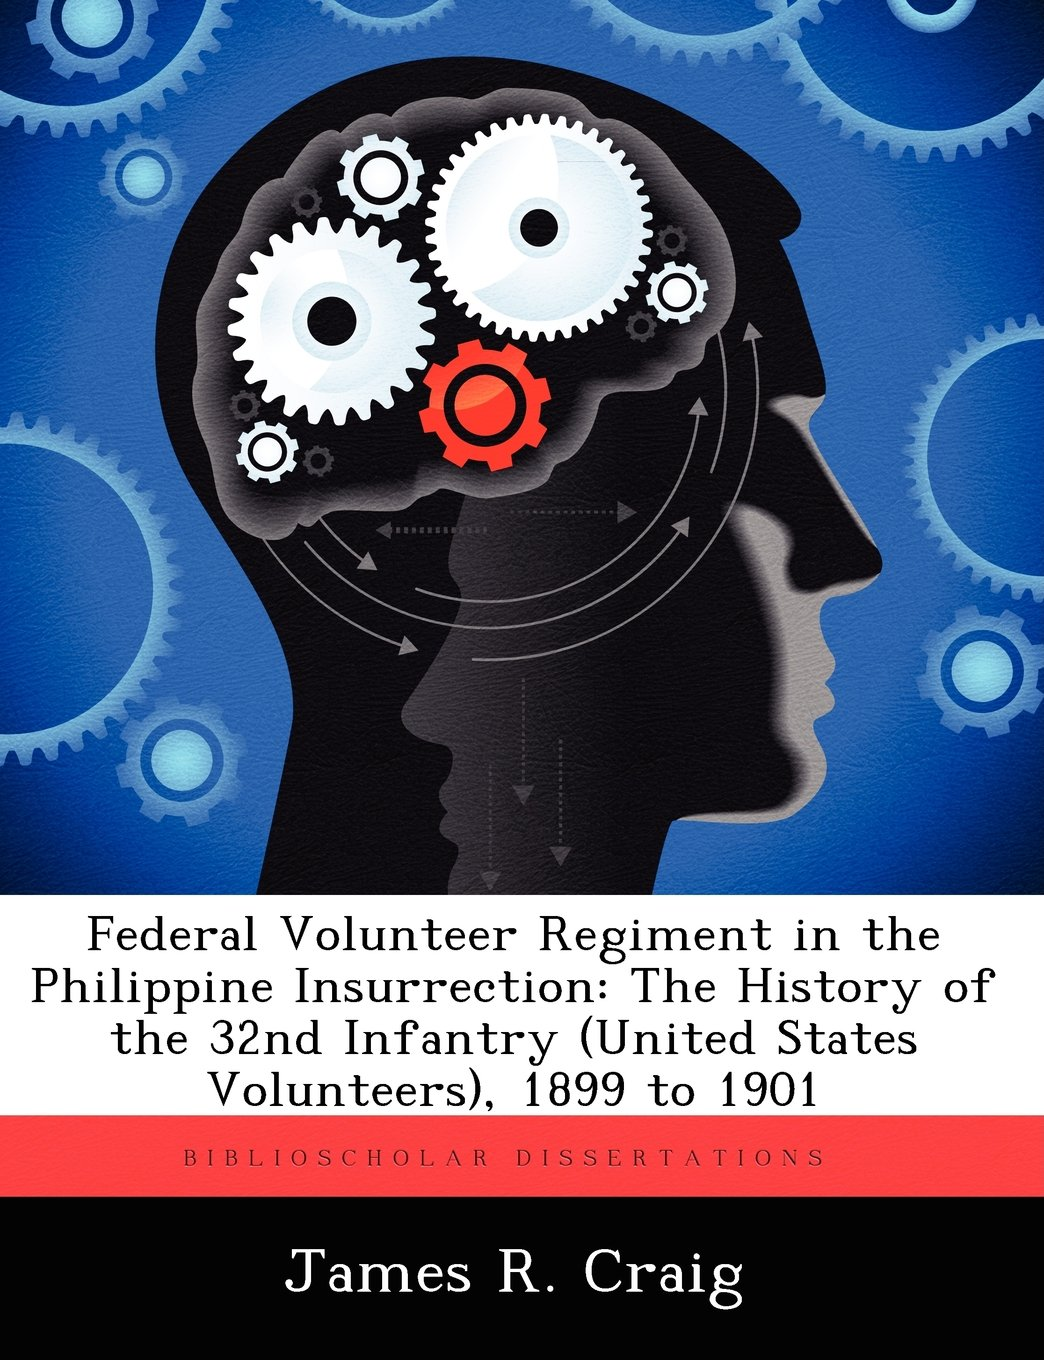 Federal Volunteer Regiment in the Philippine Insurrection: The History of the 32nd Infantry (United States Volunteers), 1899 to 1901 pdf epub